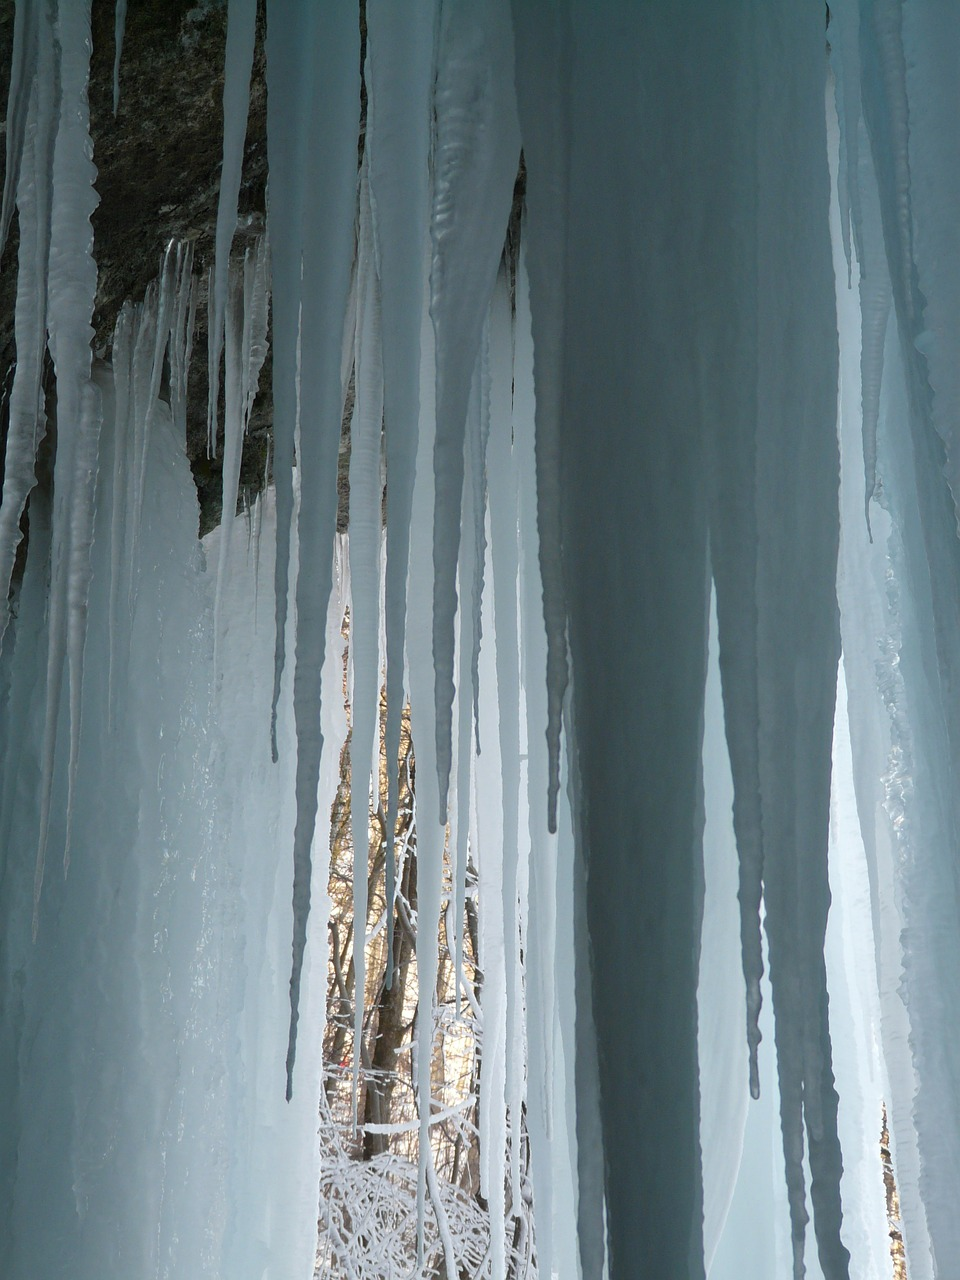 icicle ice curtain ice formations free photo